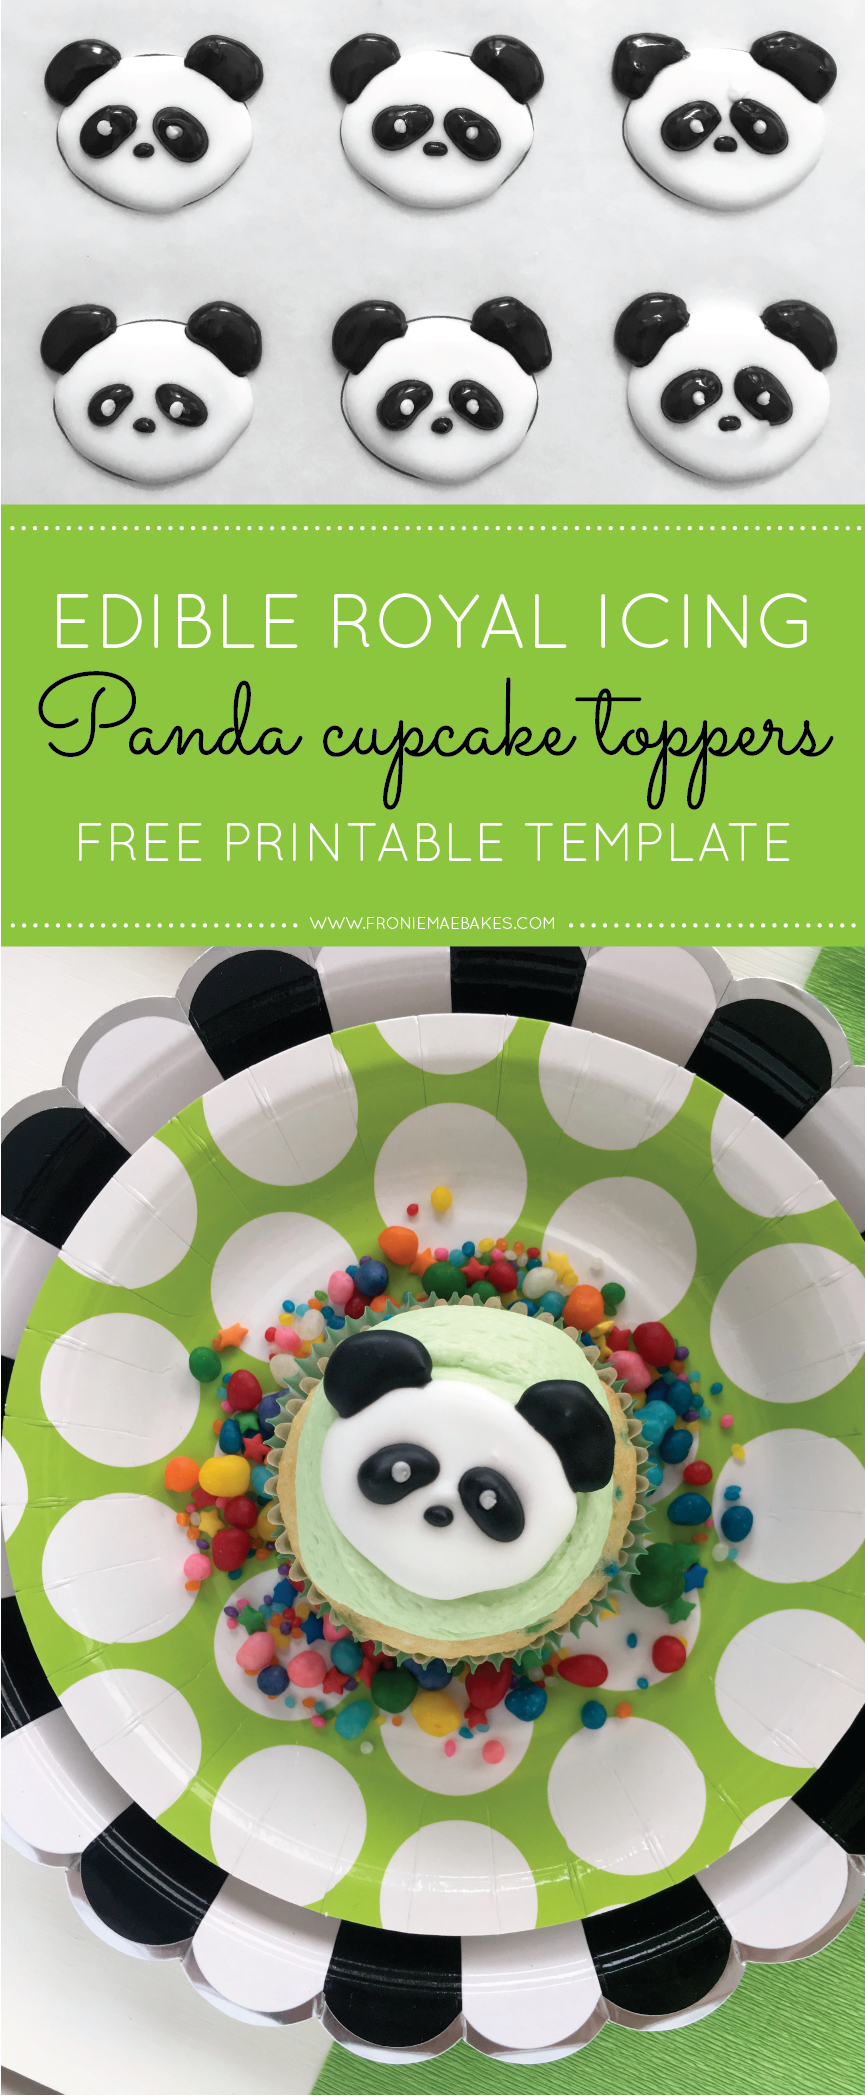 Make These Royal Icing Panda Cupcake Toppers Ahead Of Time With Our Free Printable Template Found Royal Icing Templates Panda Cupcakes Royal Icing Decorations